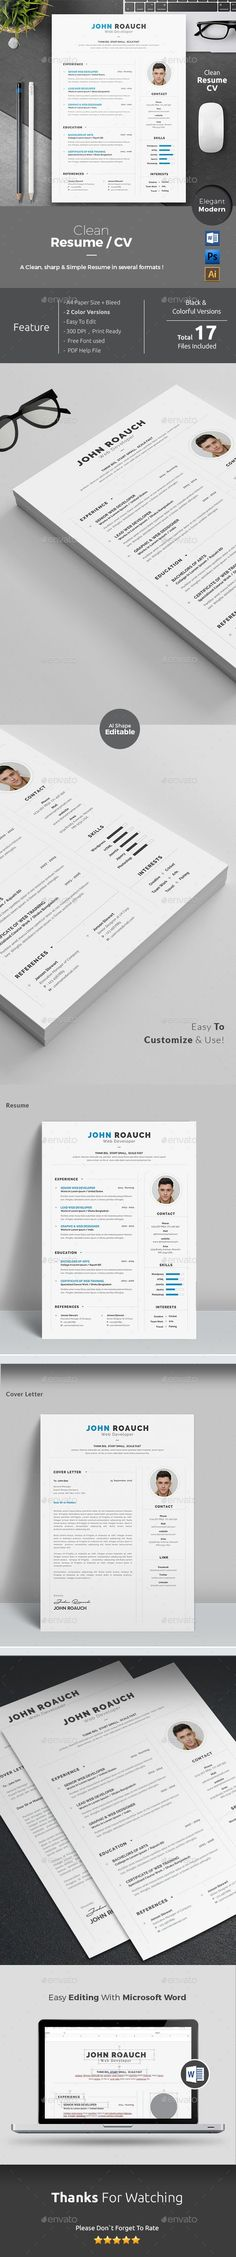 Resume Cv template, Resume cv and Font logo - office 2010 resume template